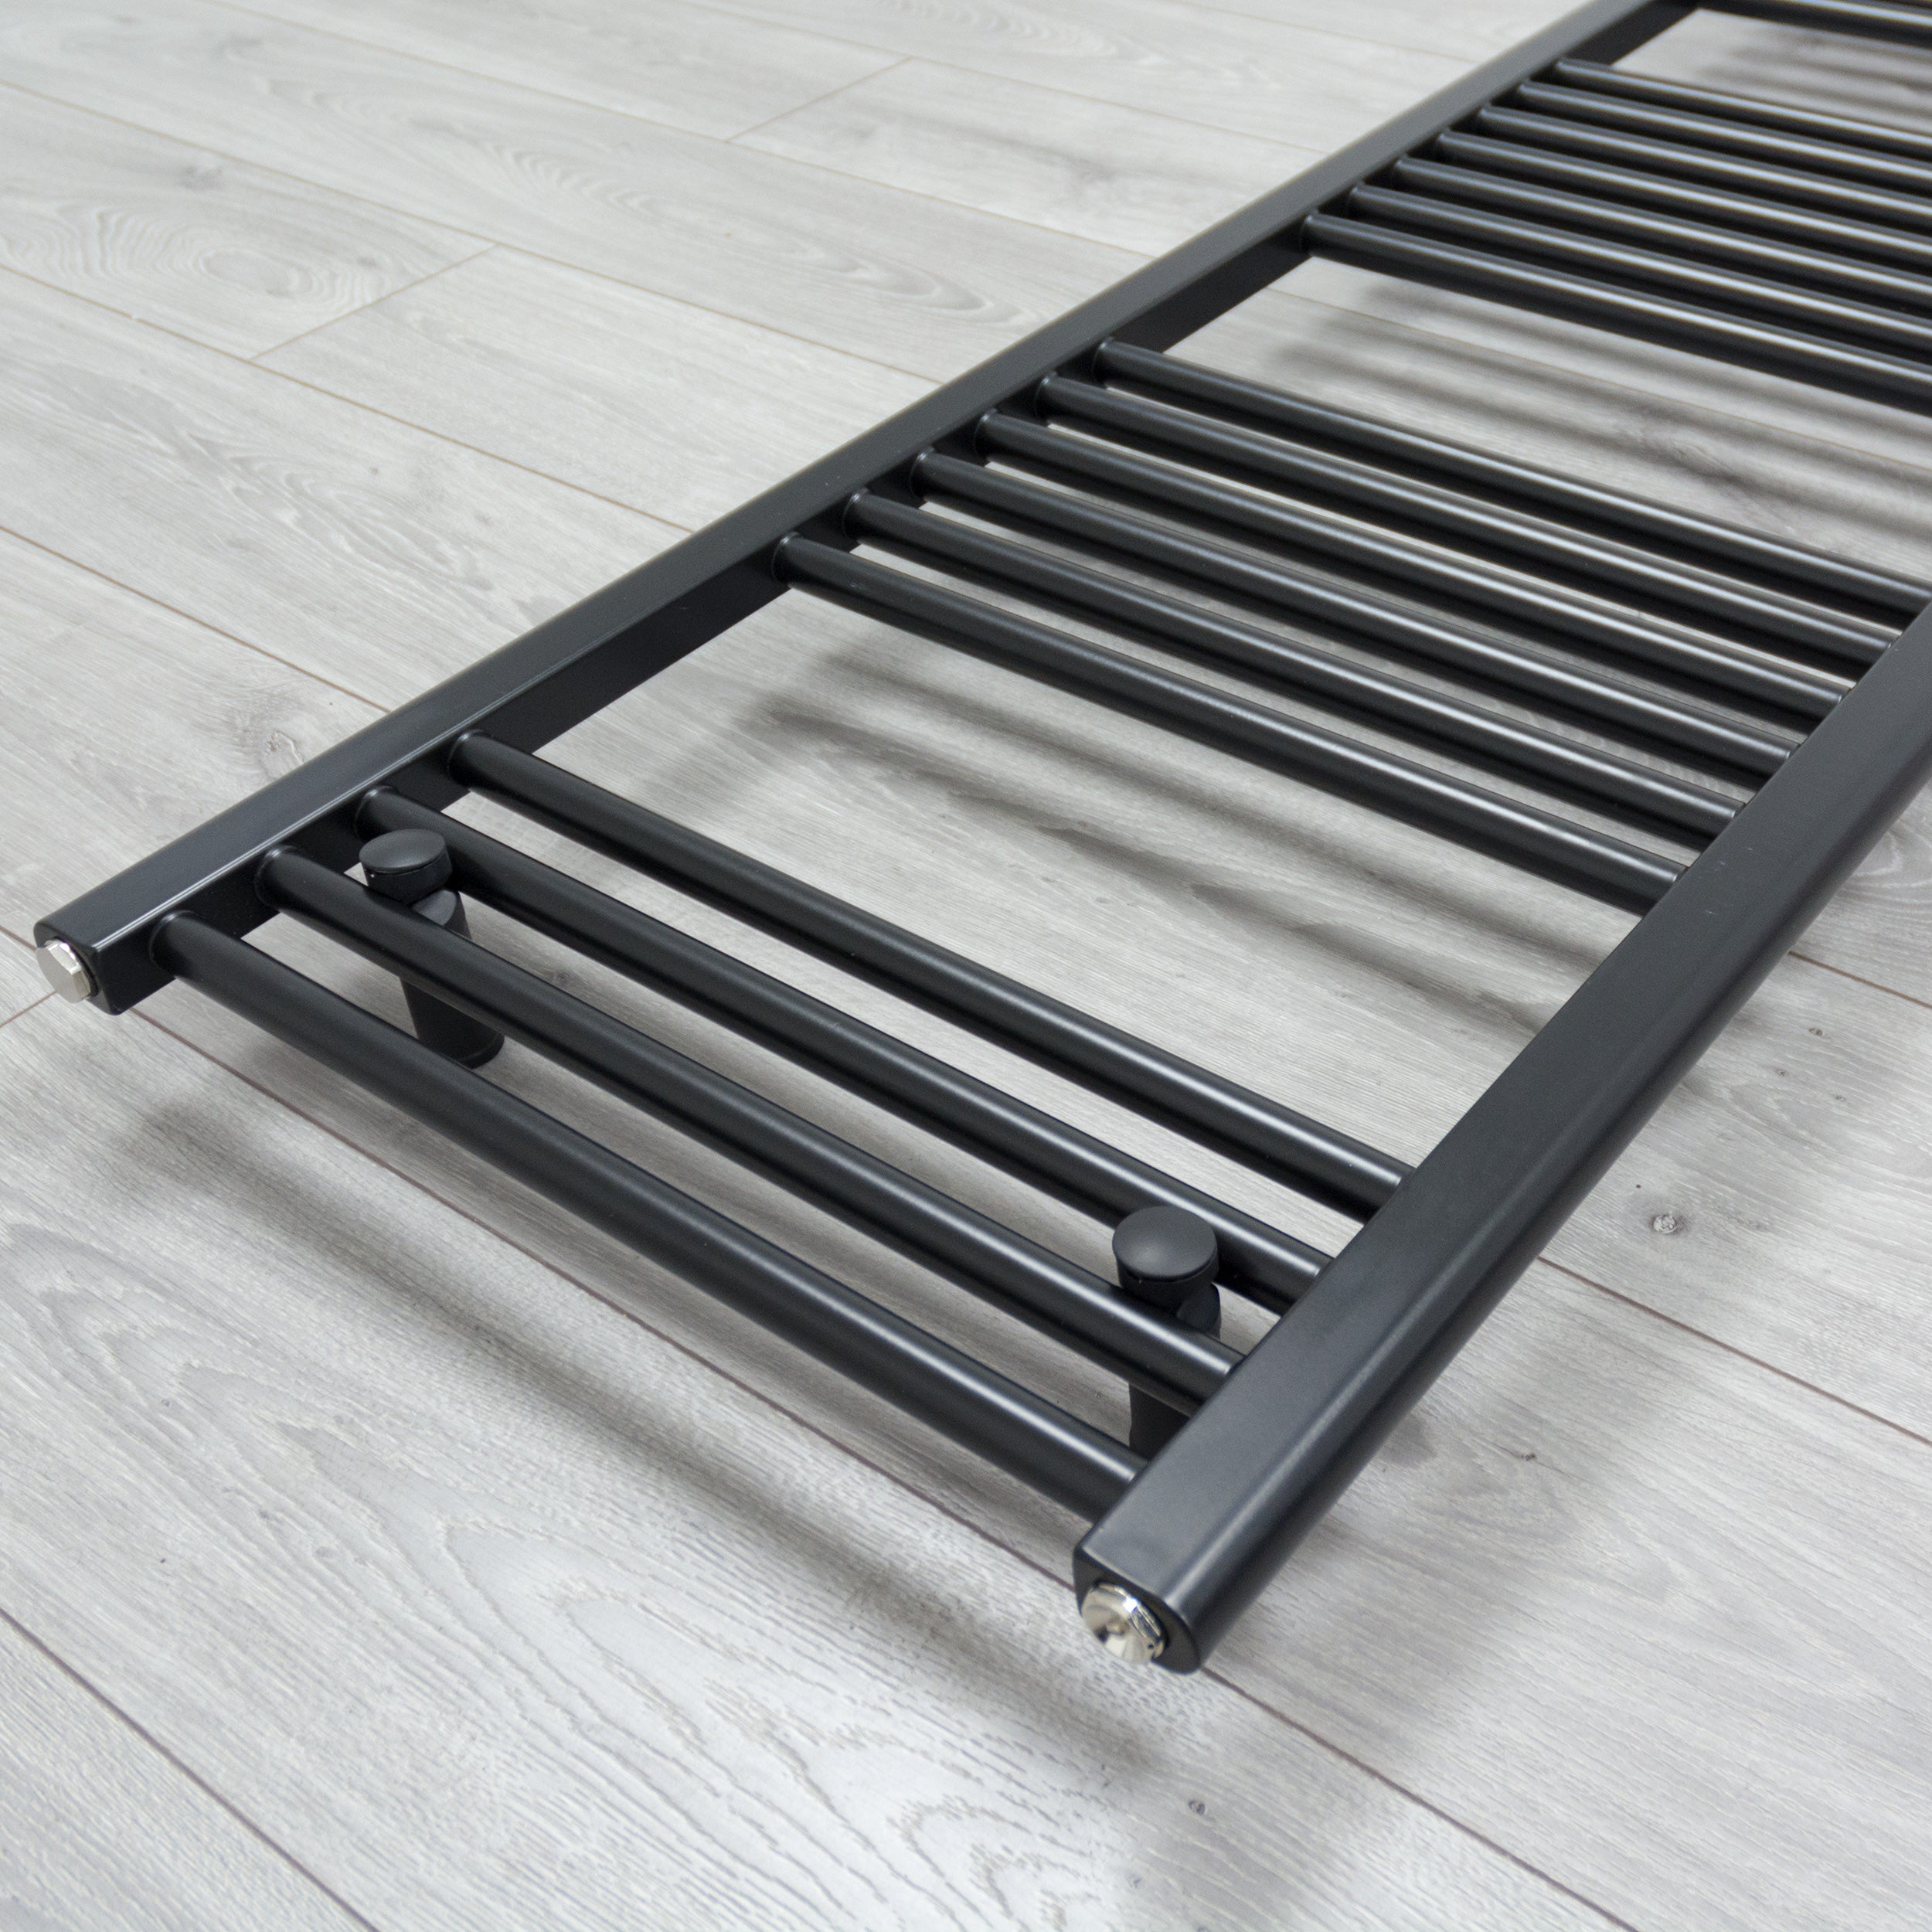 400mm x 800mm Black Heated Towel Rail Radiator Close Up Image